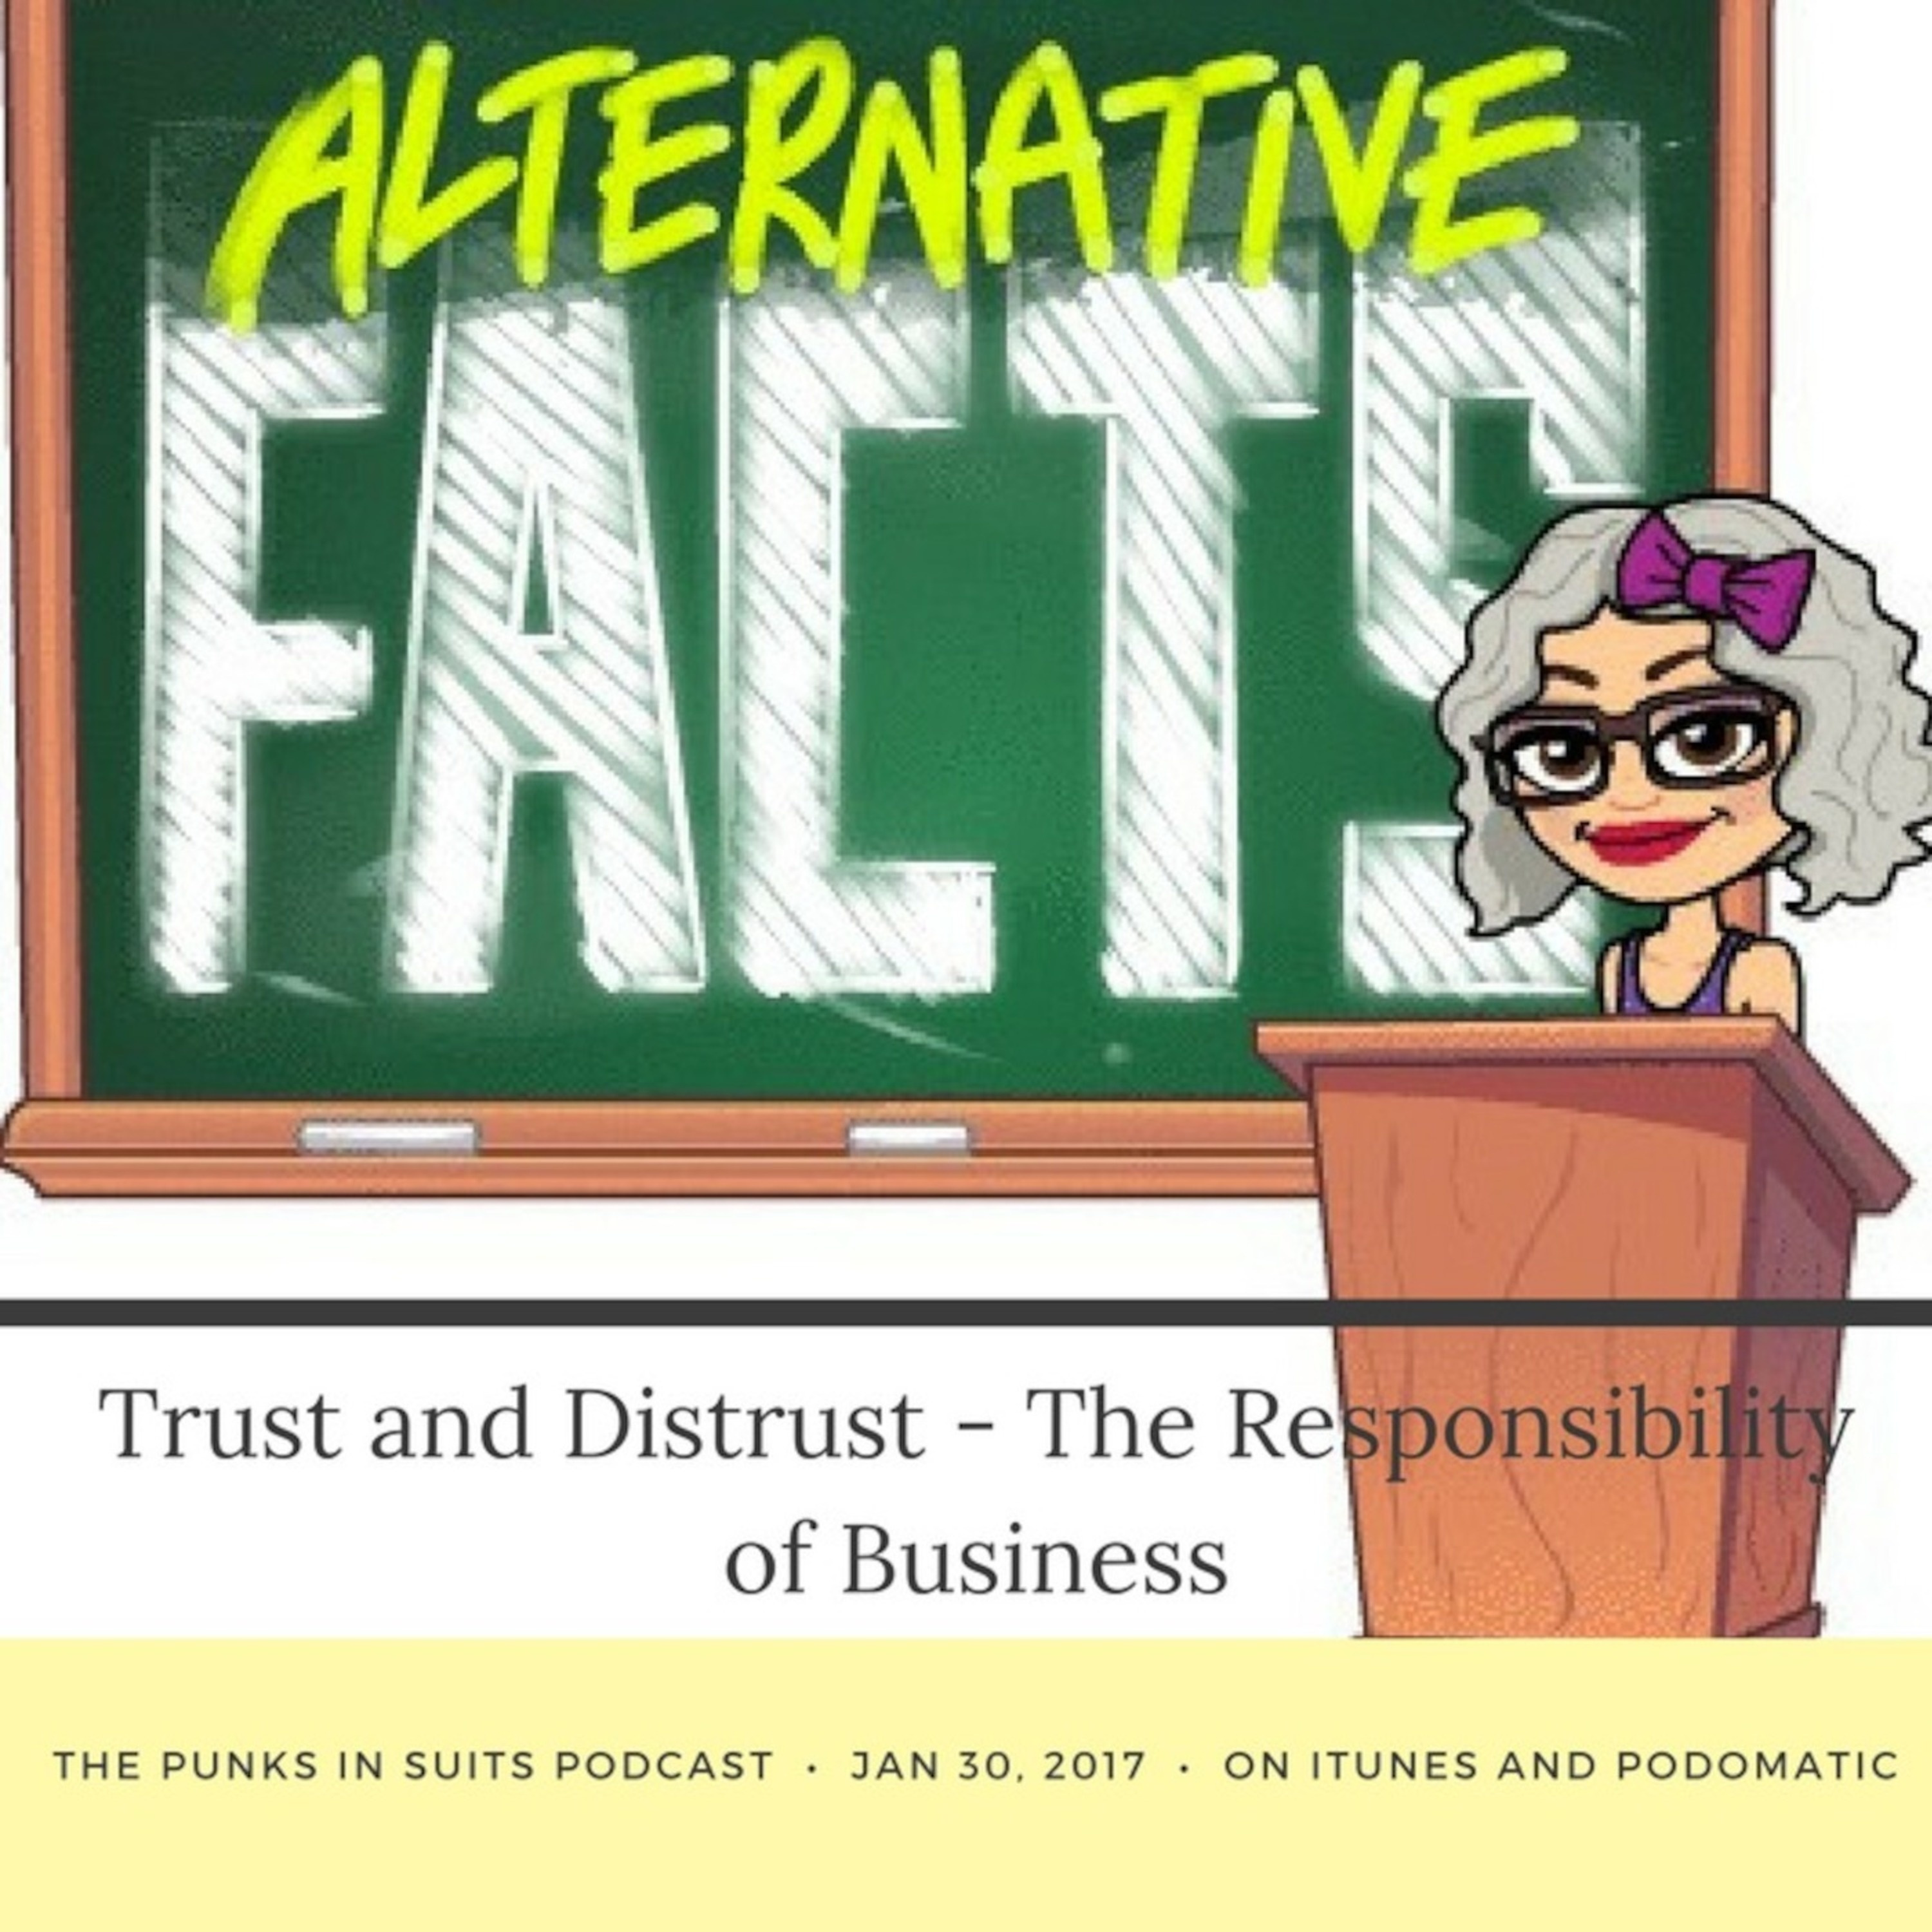 Episode 14: Trust and Distrust - The Responsibility of Business